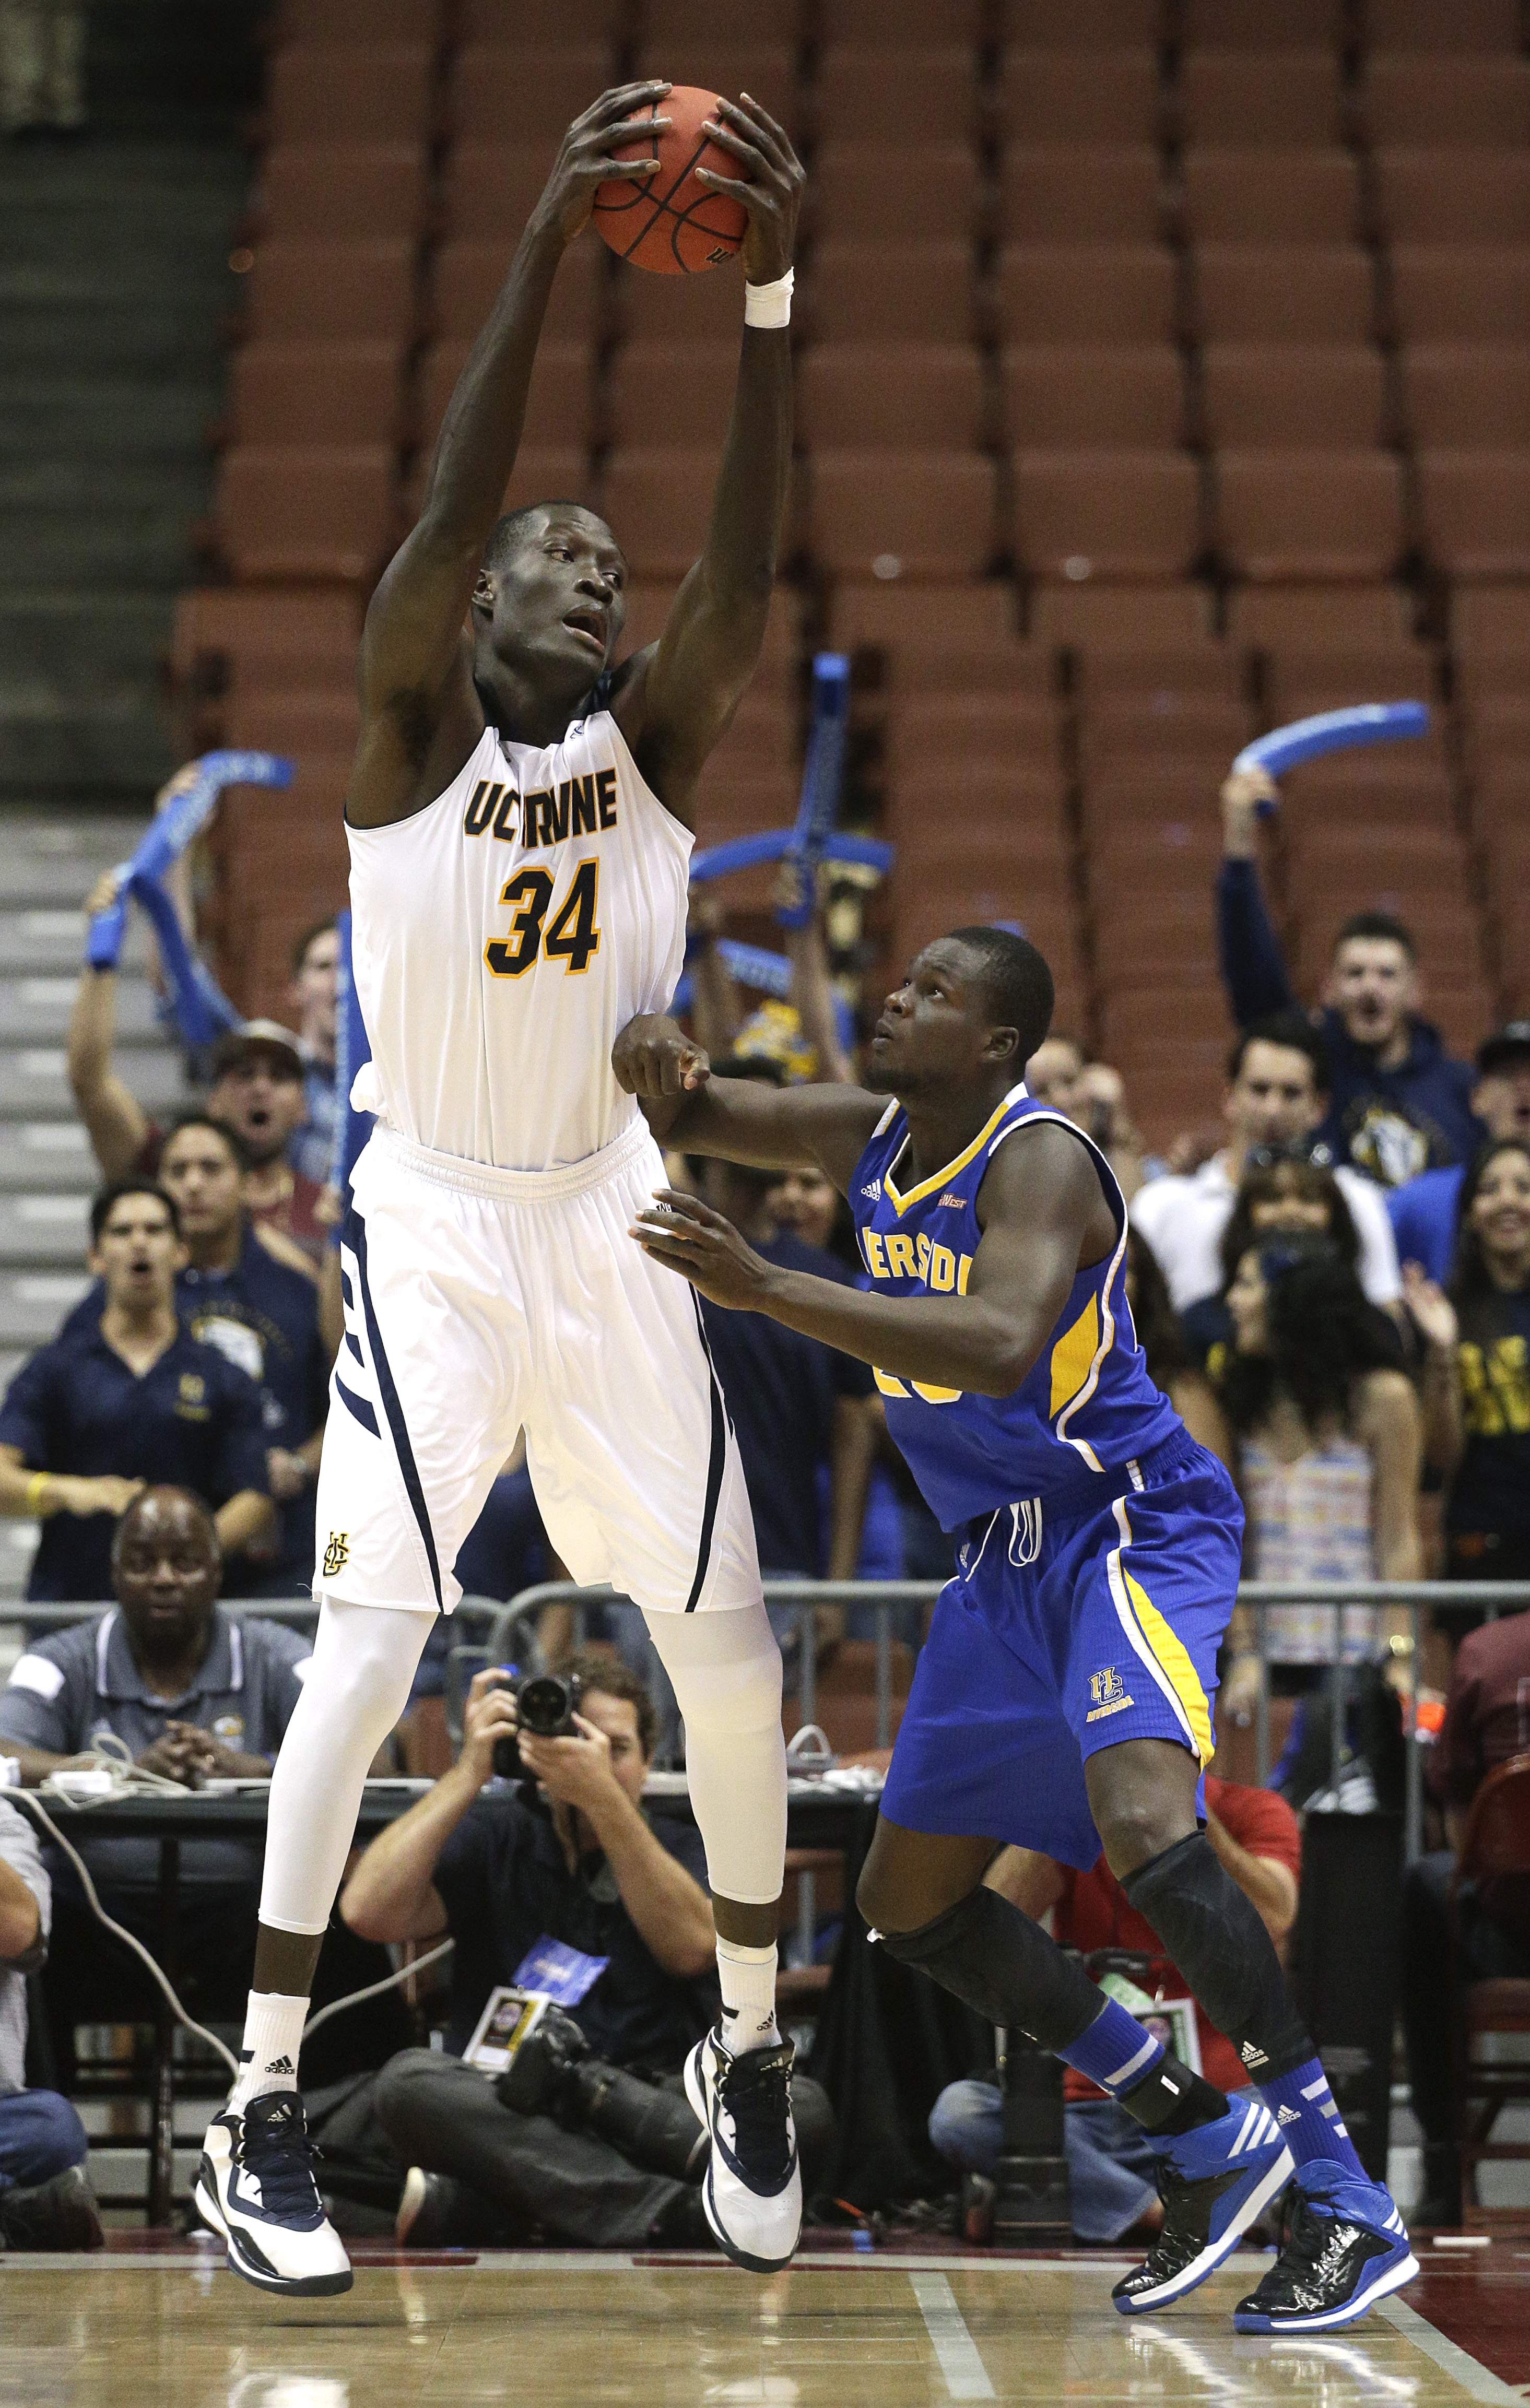 The official athletics website for the University of California Irvine Anteaters